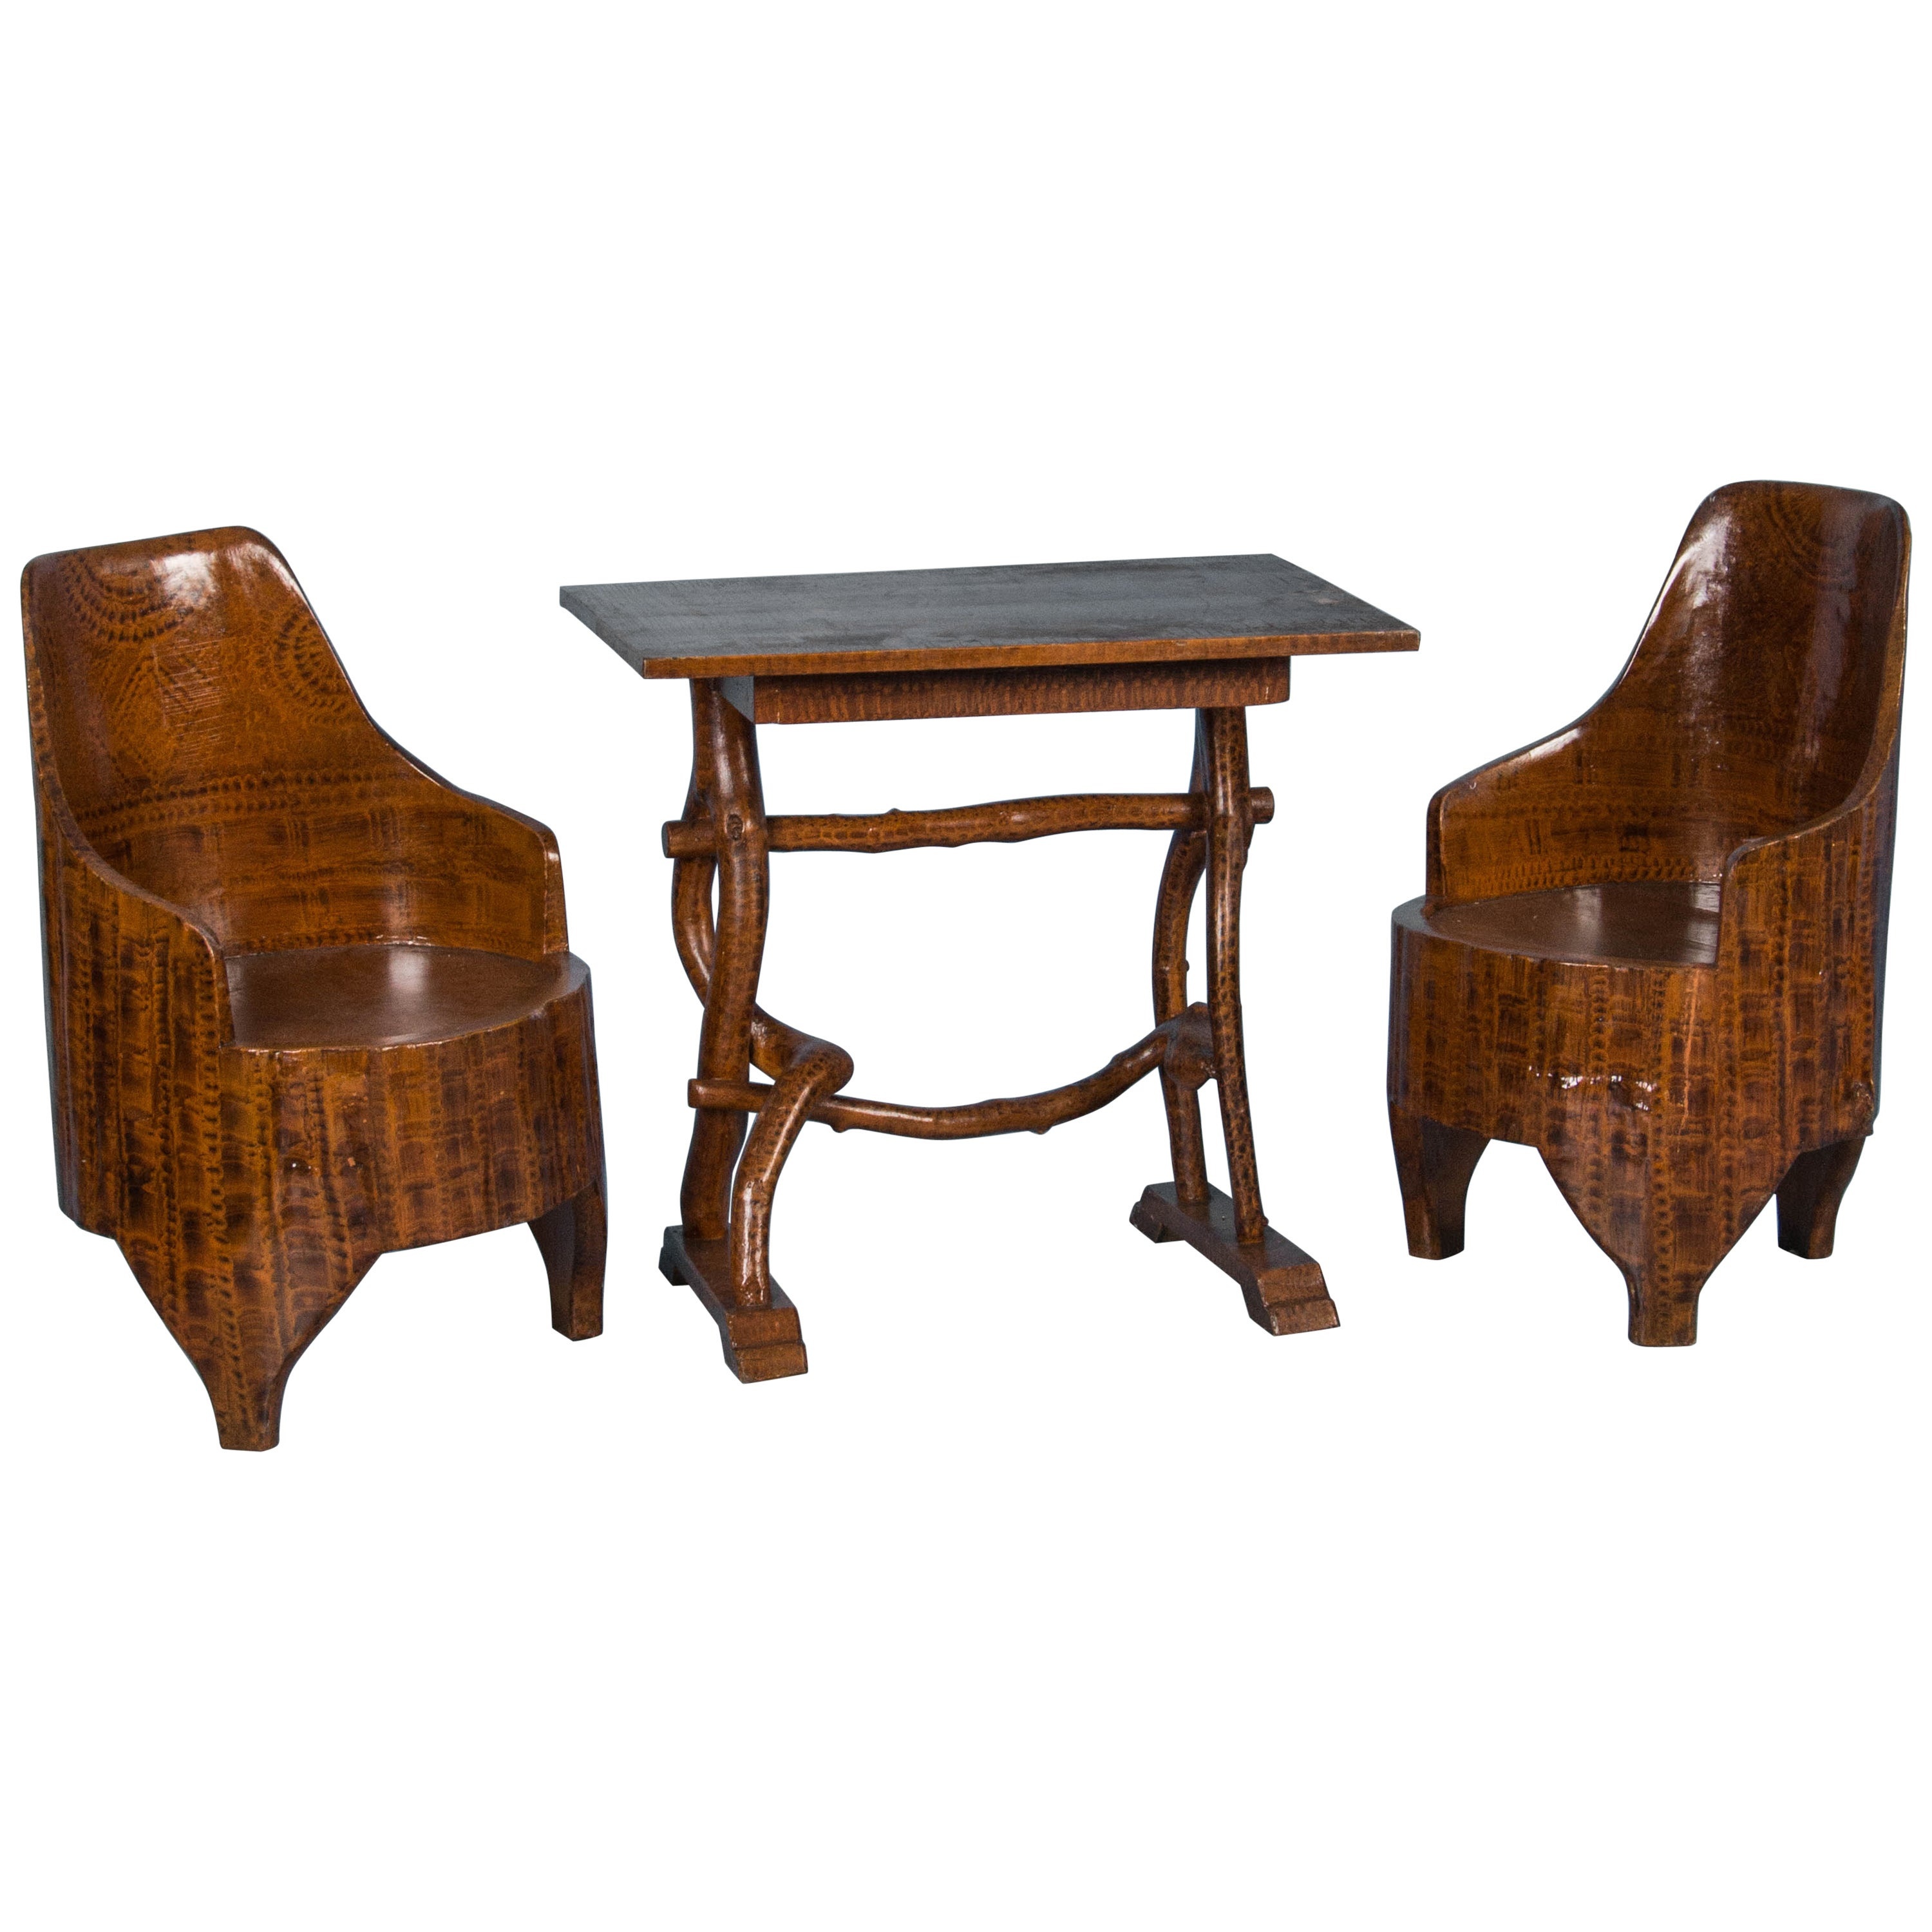 Folk Art Painted Antique Swedish Table and Chairs